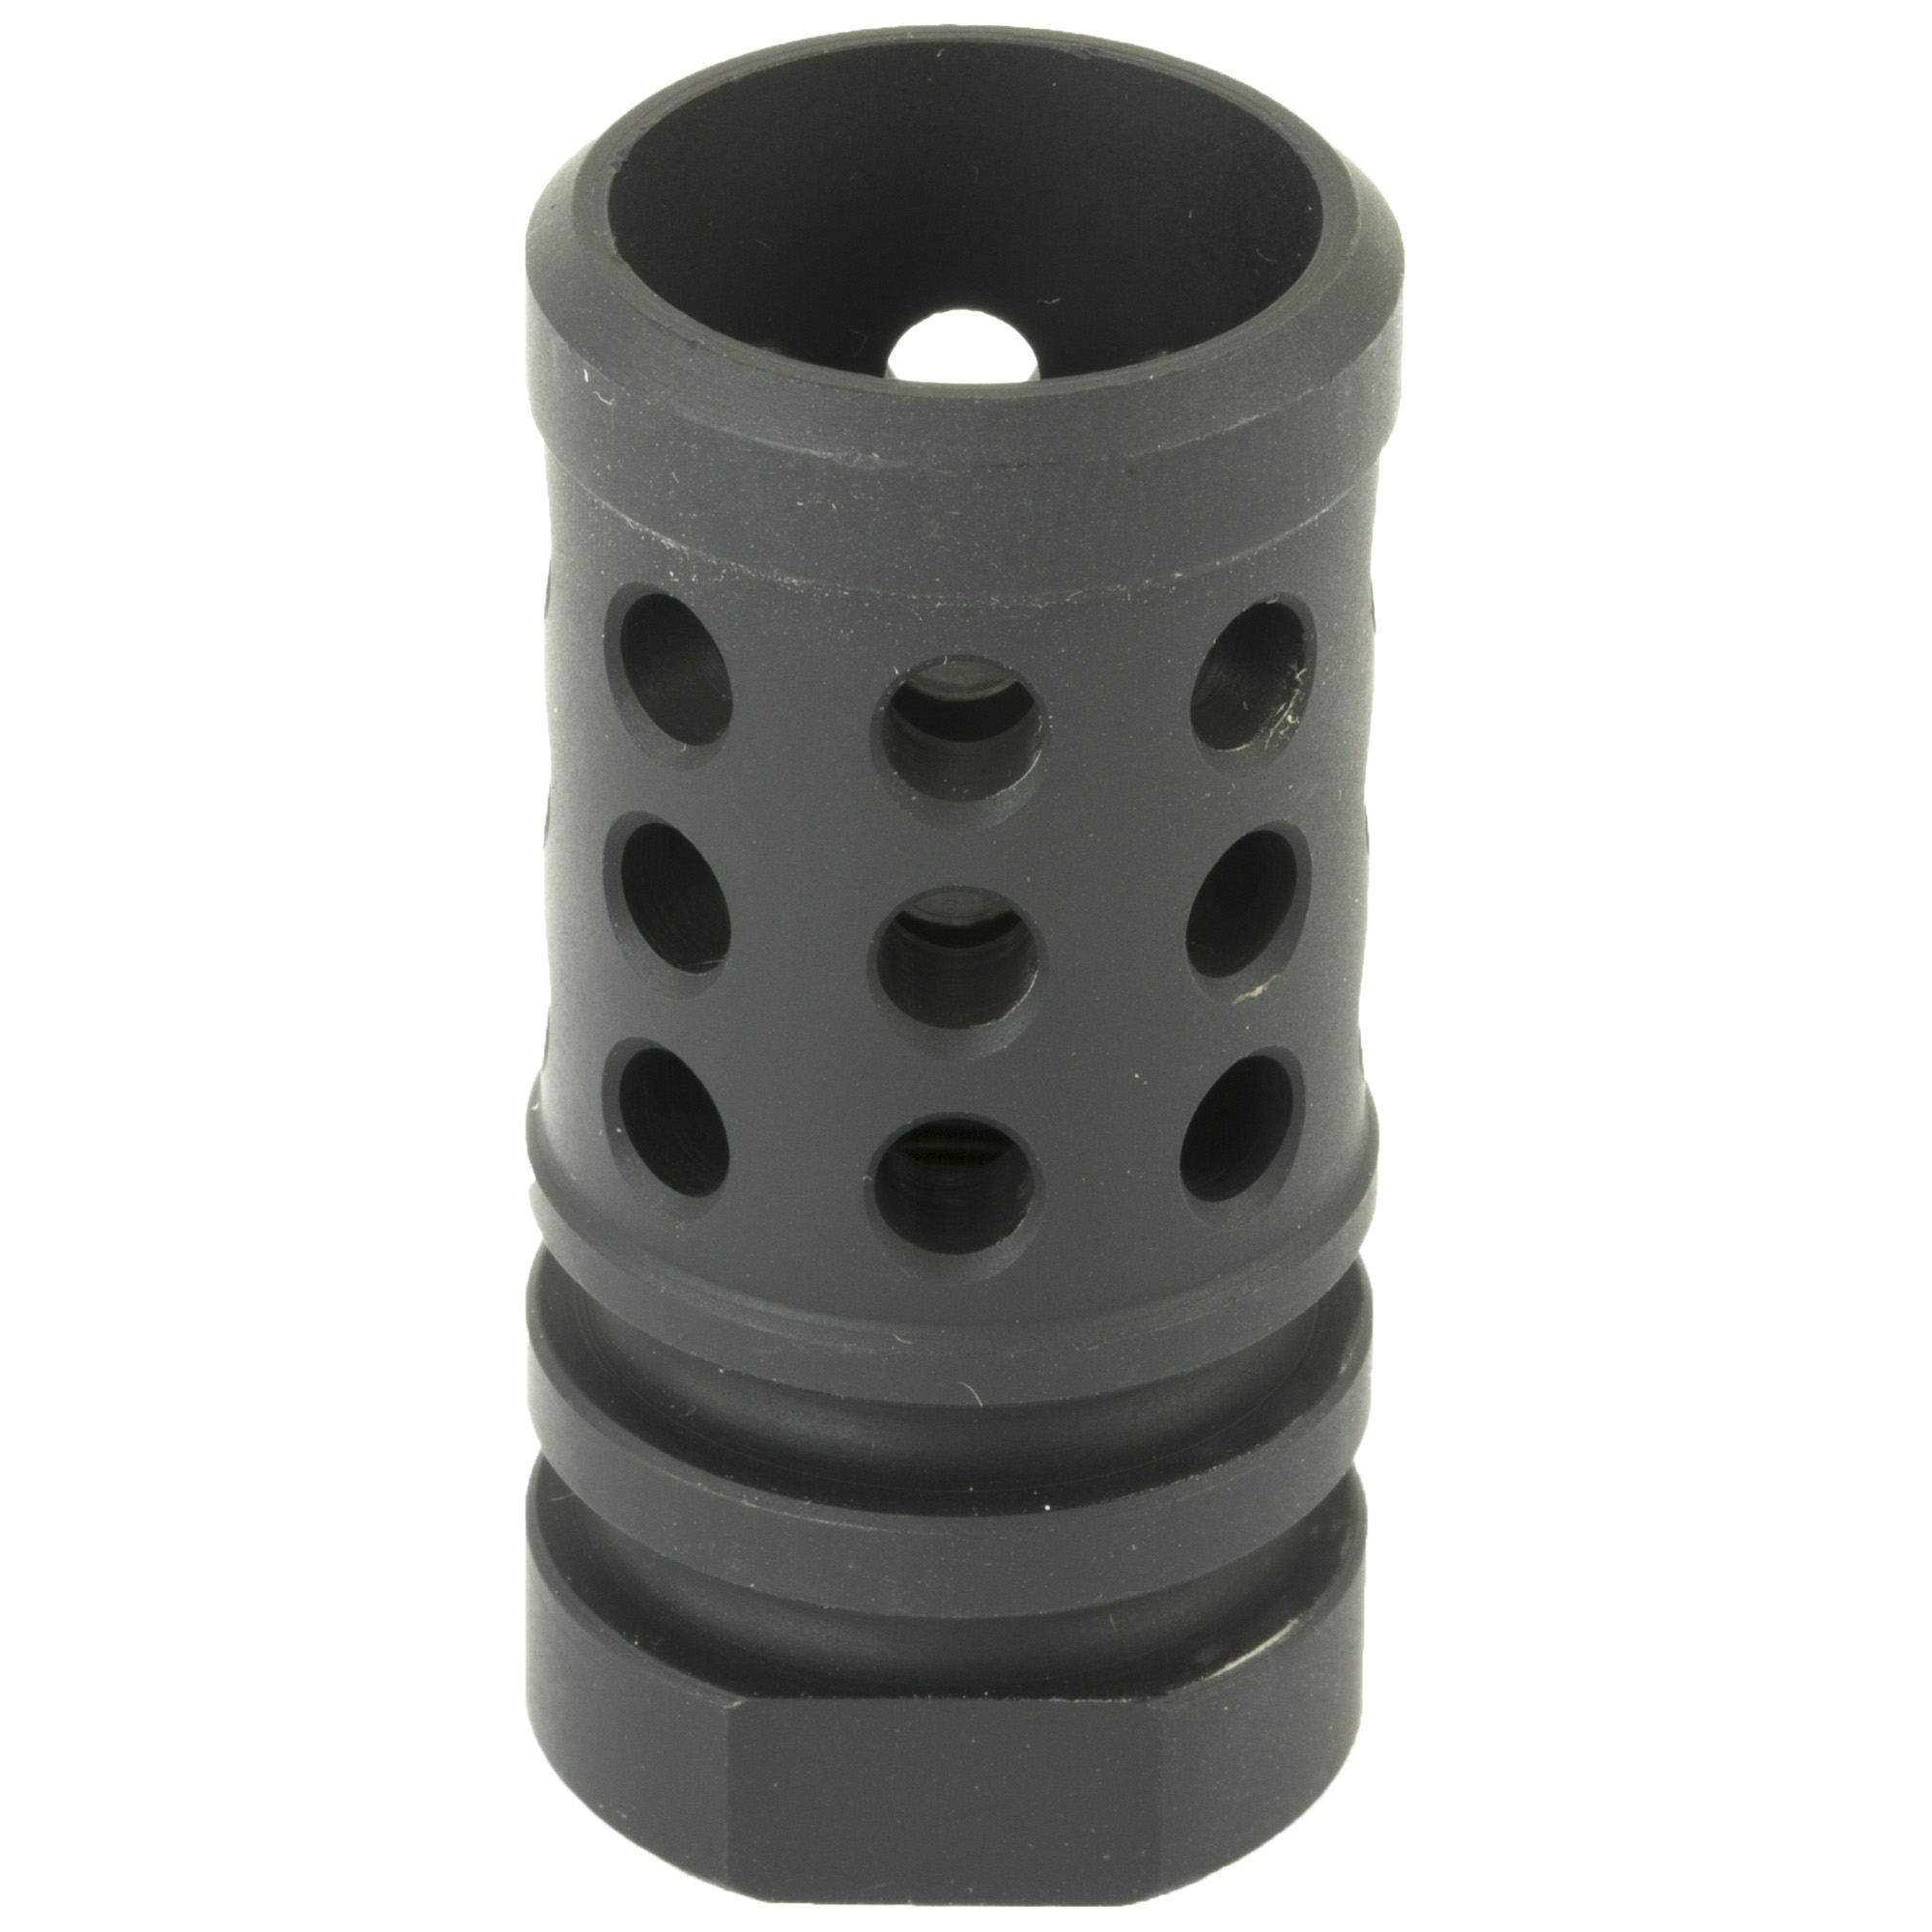 9mm AR-15 1/2x36 flash hider from Angstadt Arms